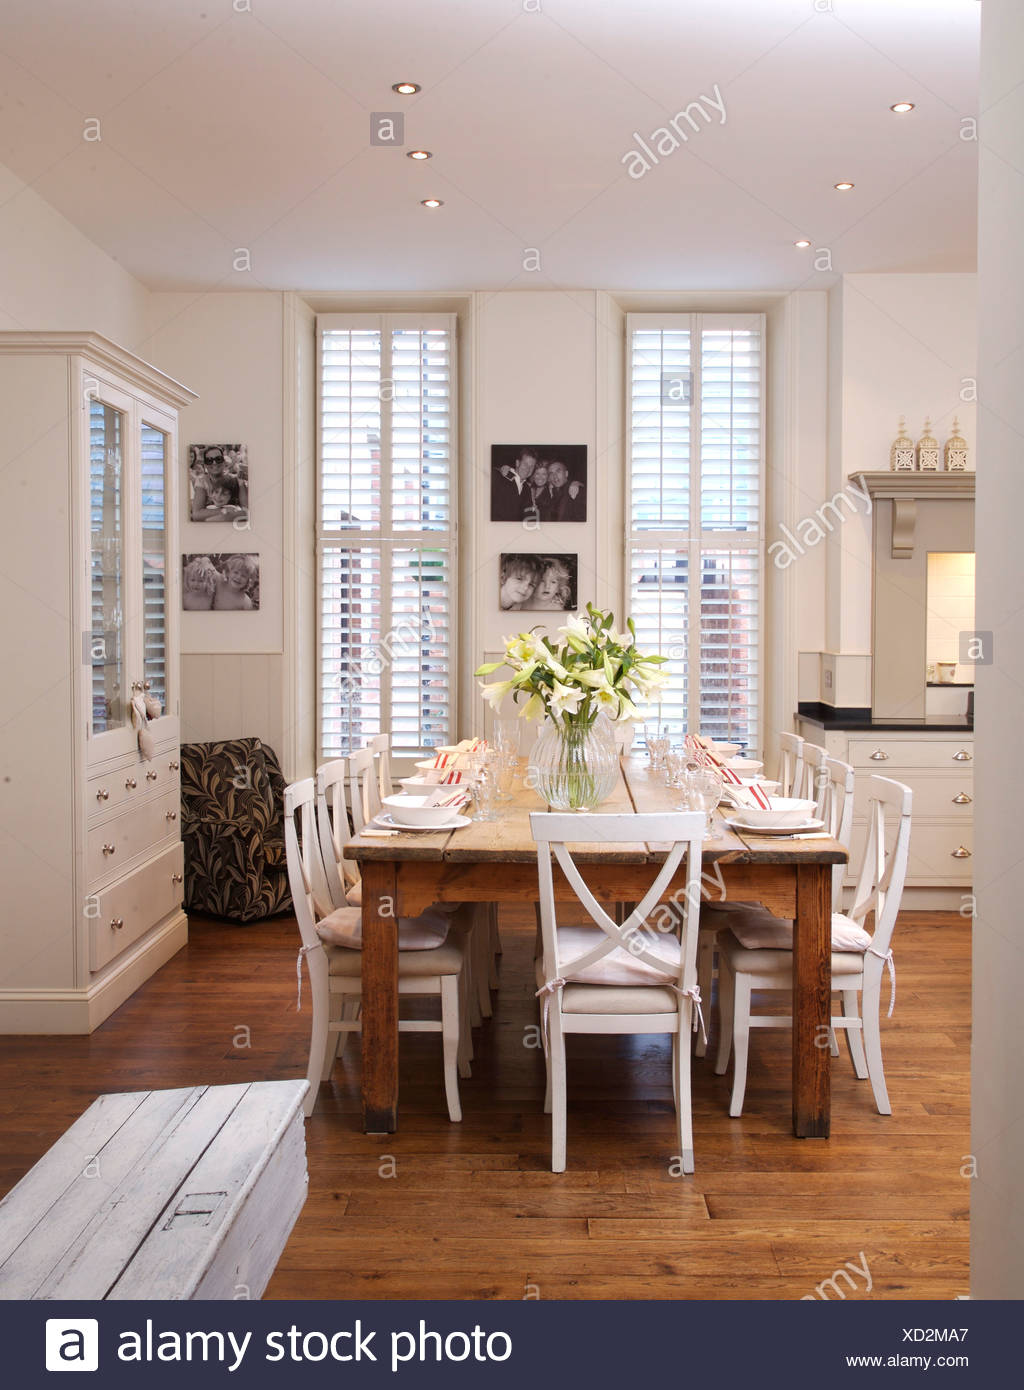 White Chairs At Simple Wood Table In Modern White Kitchen